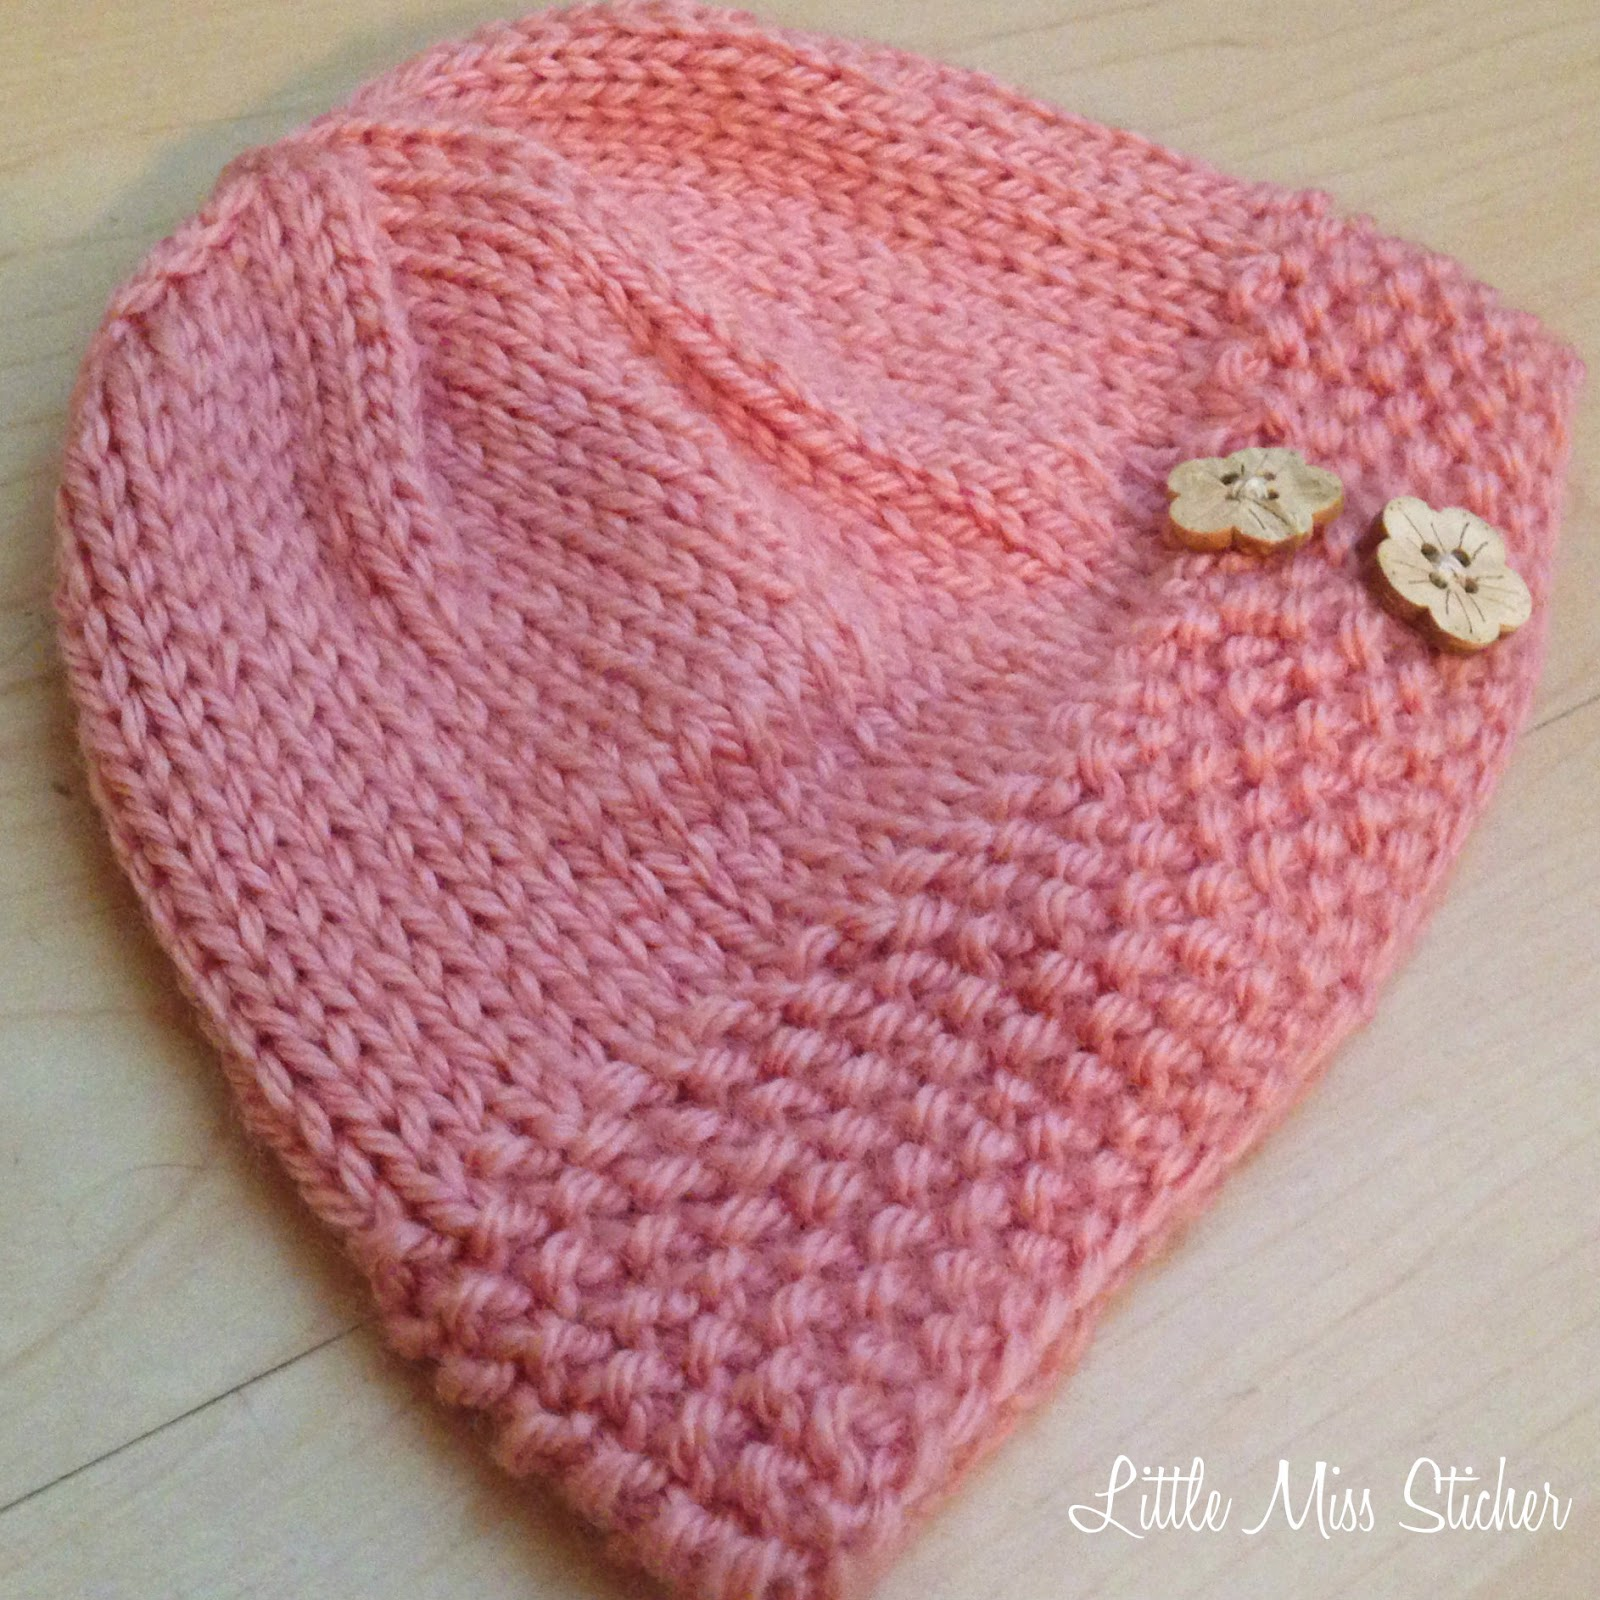 Easy Beanie Hat Knitting Pattern Free : Little Miss Stitcher: Bitty Beanie Free Knit Pattern